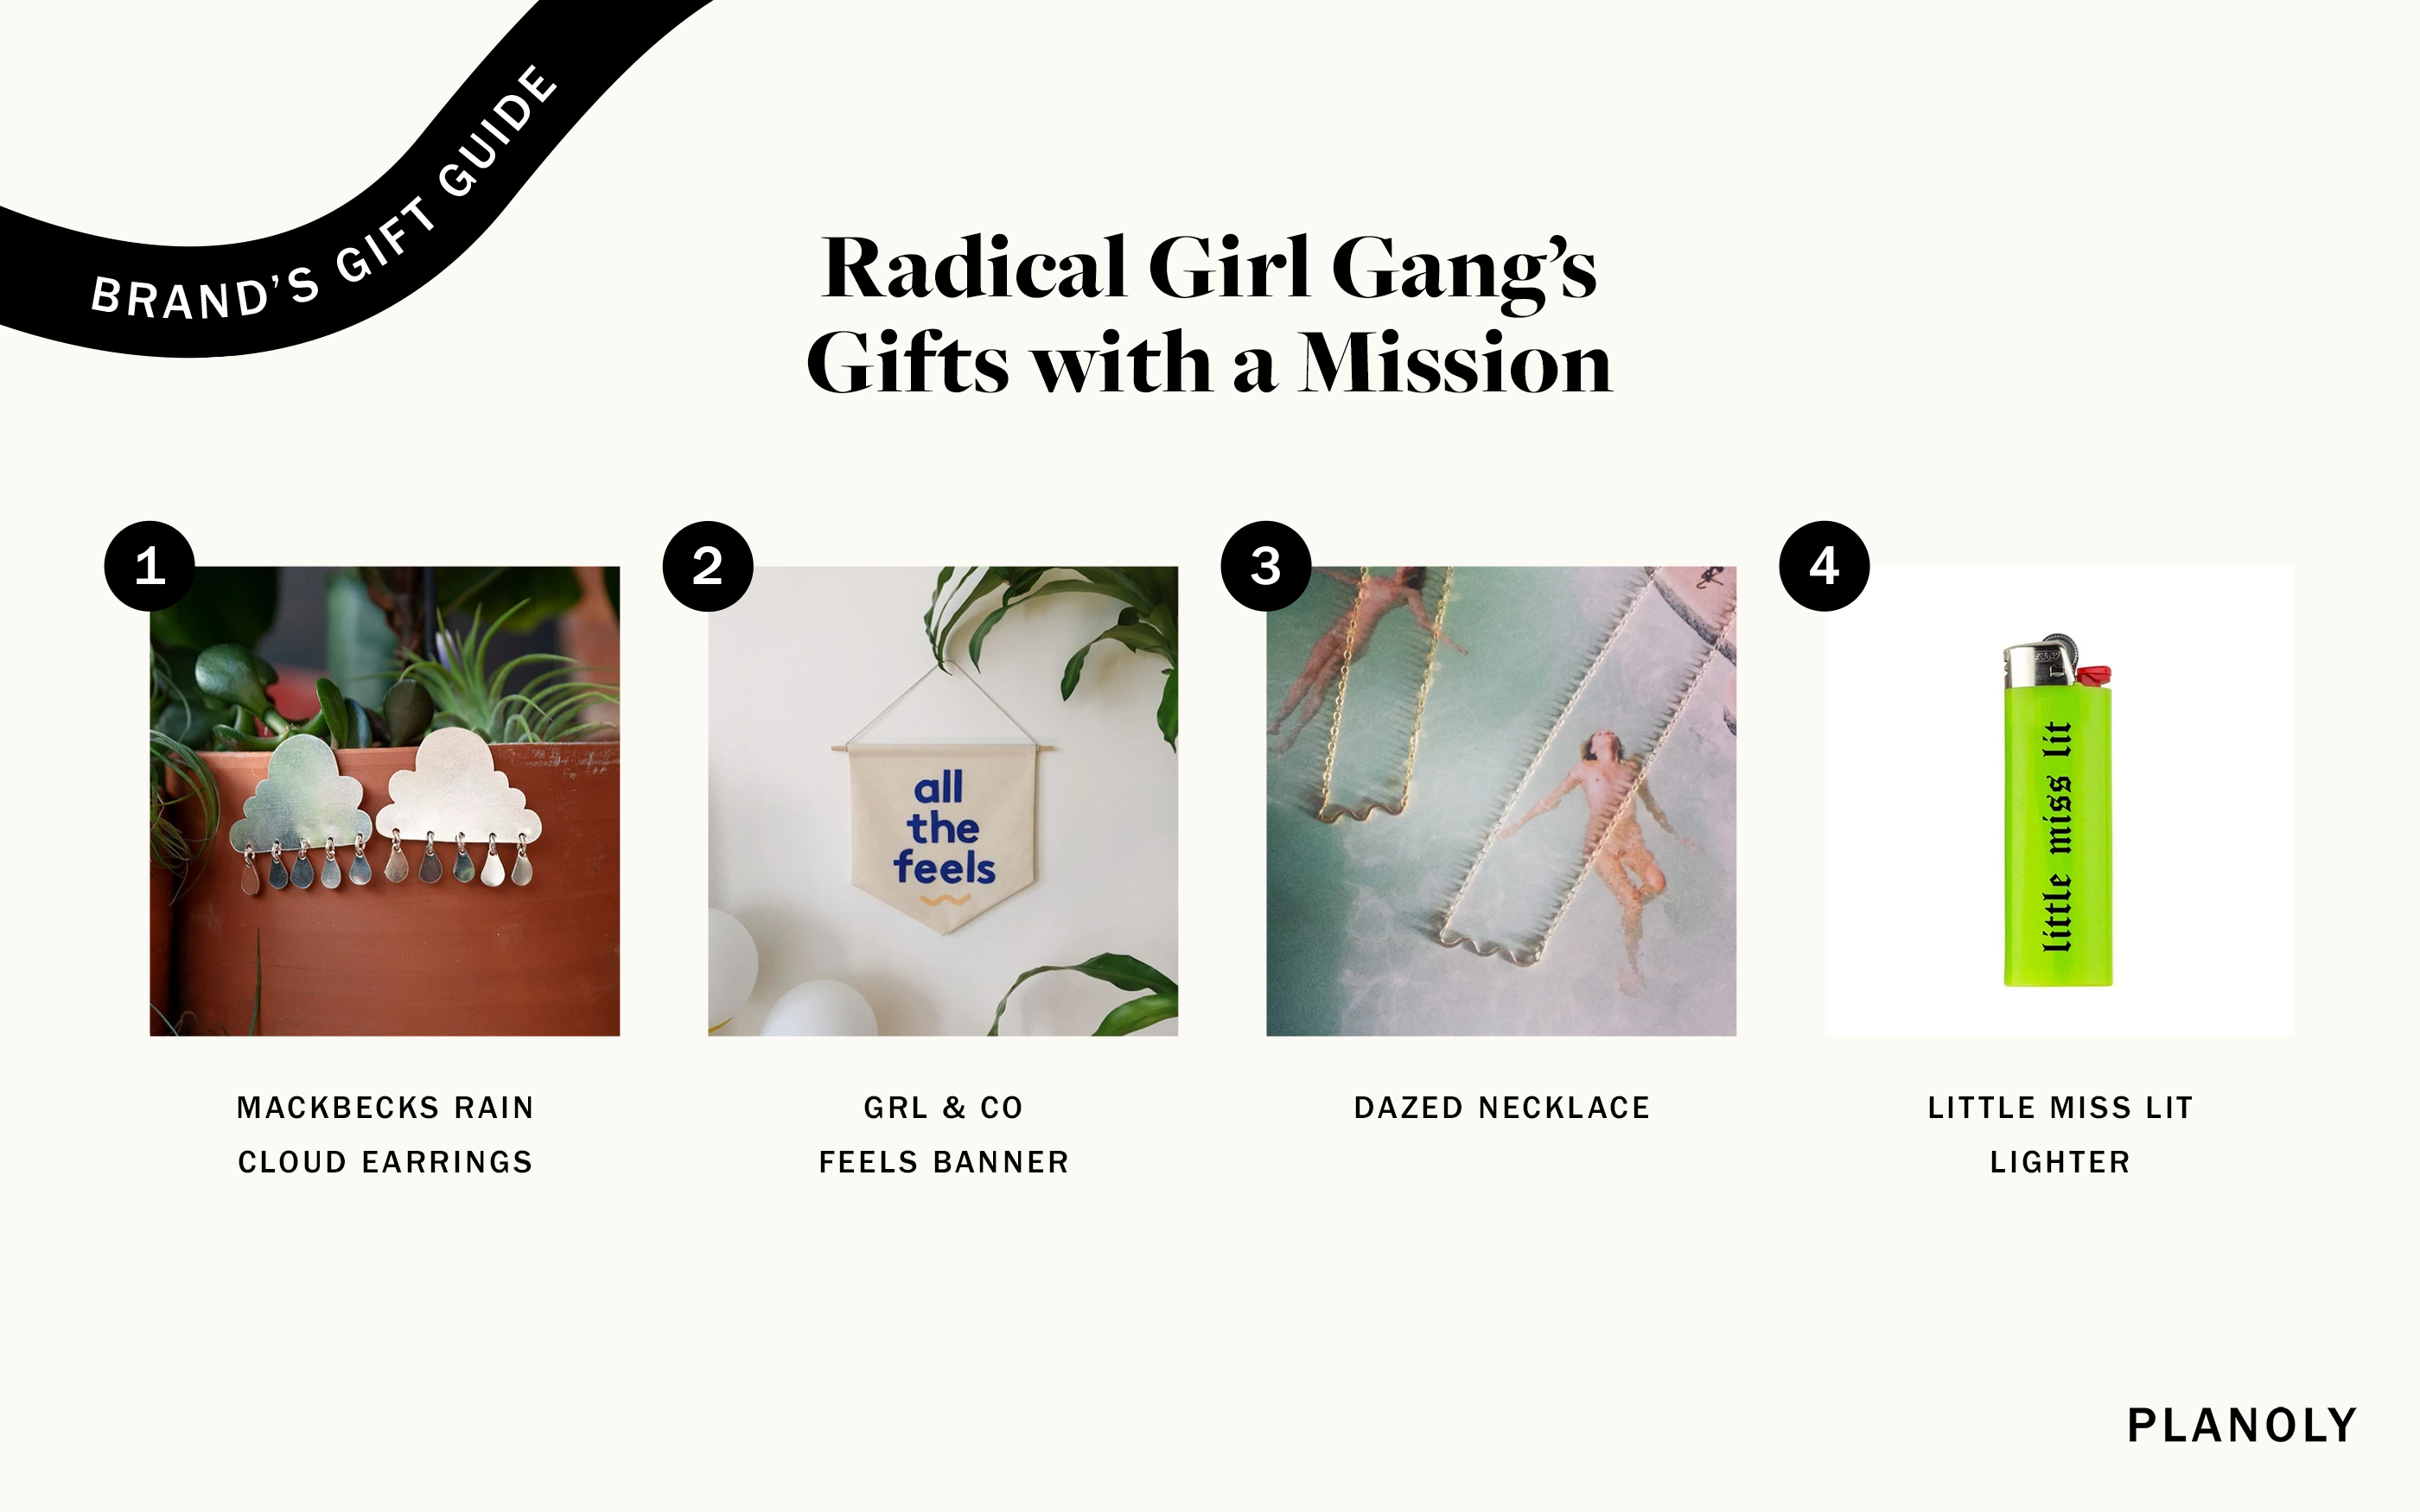 PLANOLY - Blog Post - How to Create a Gift Guide - Image 7